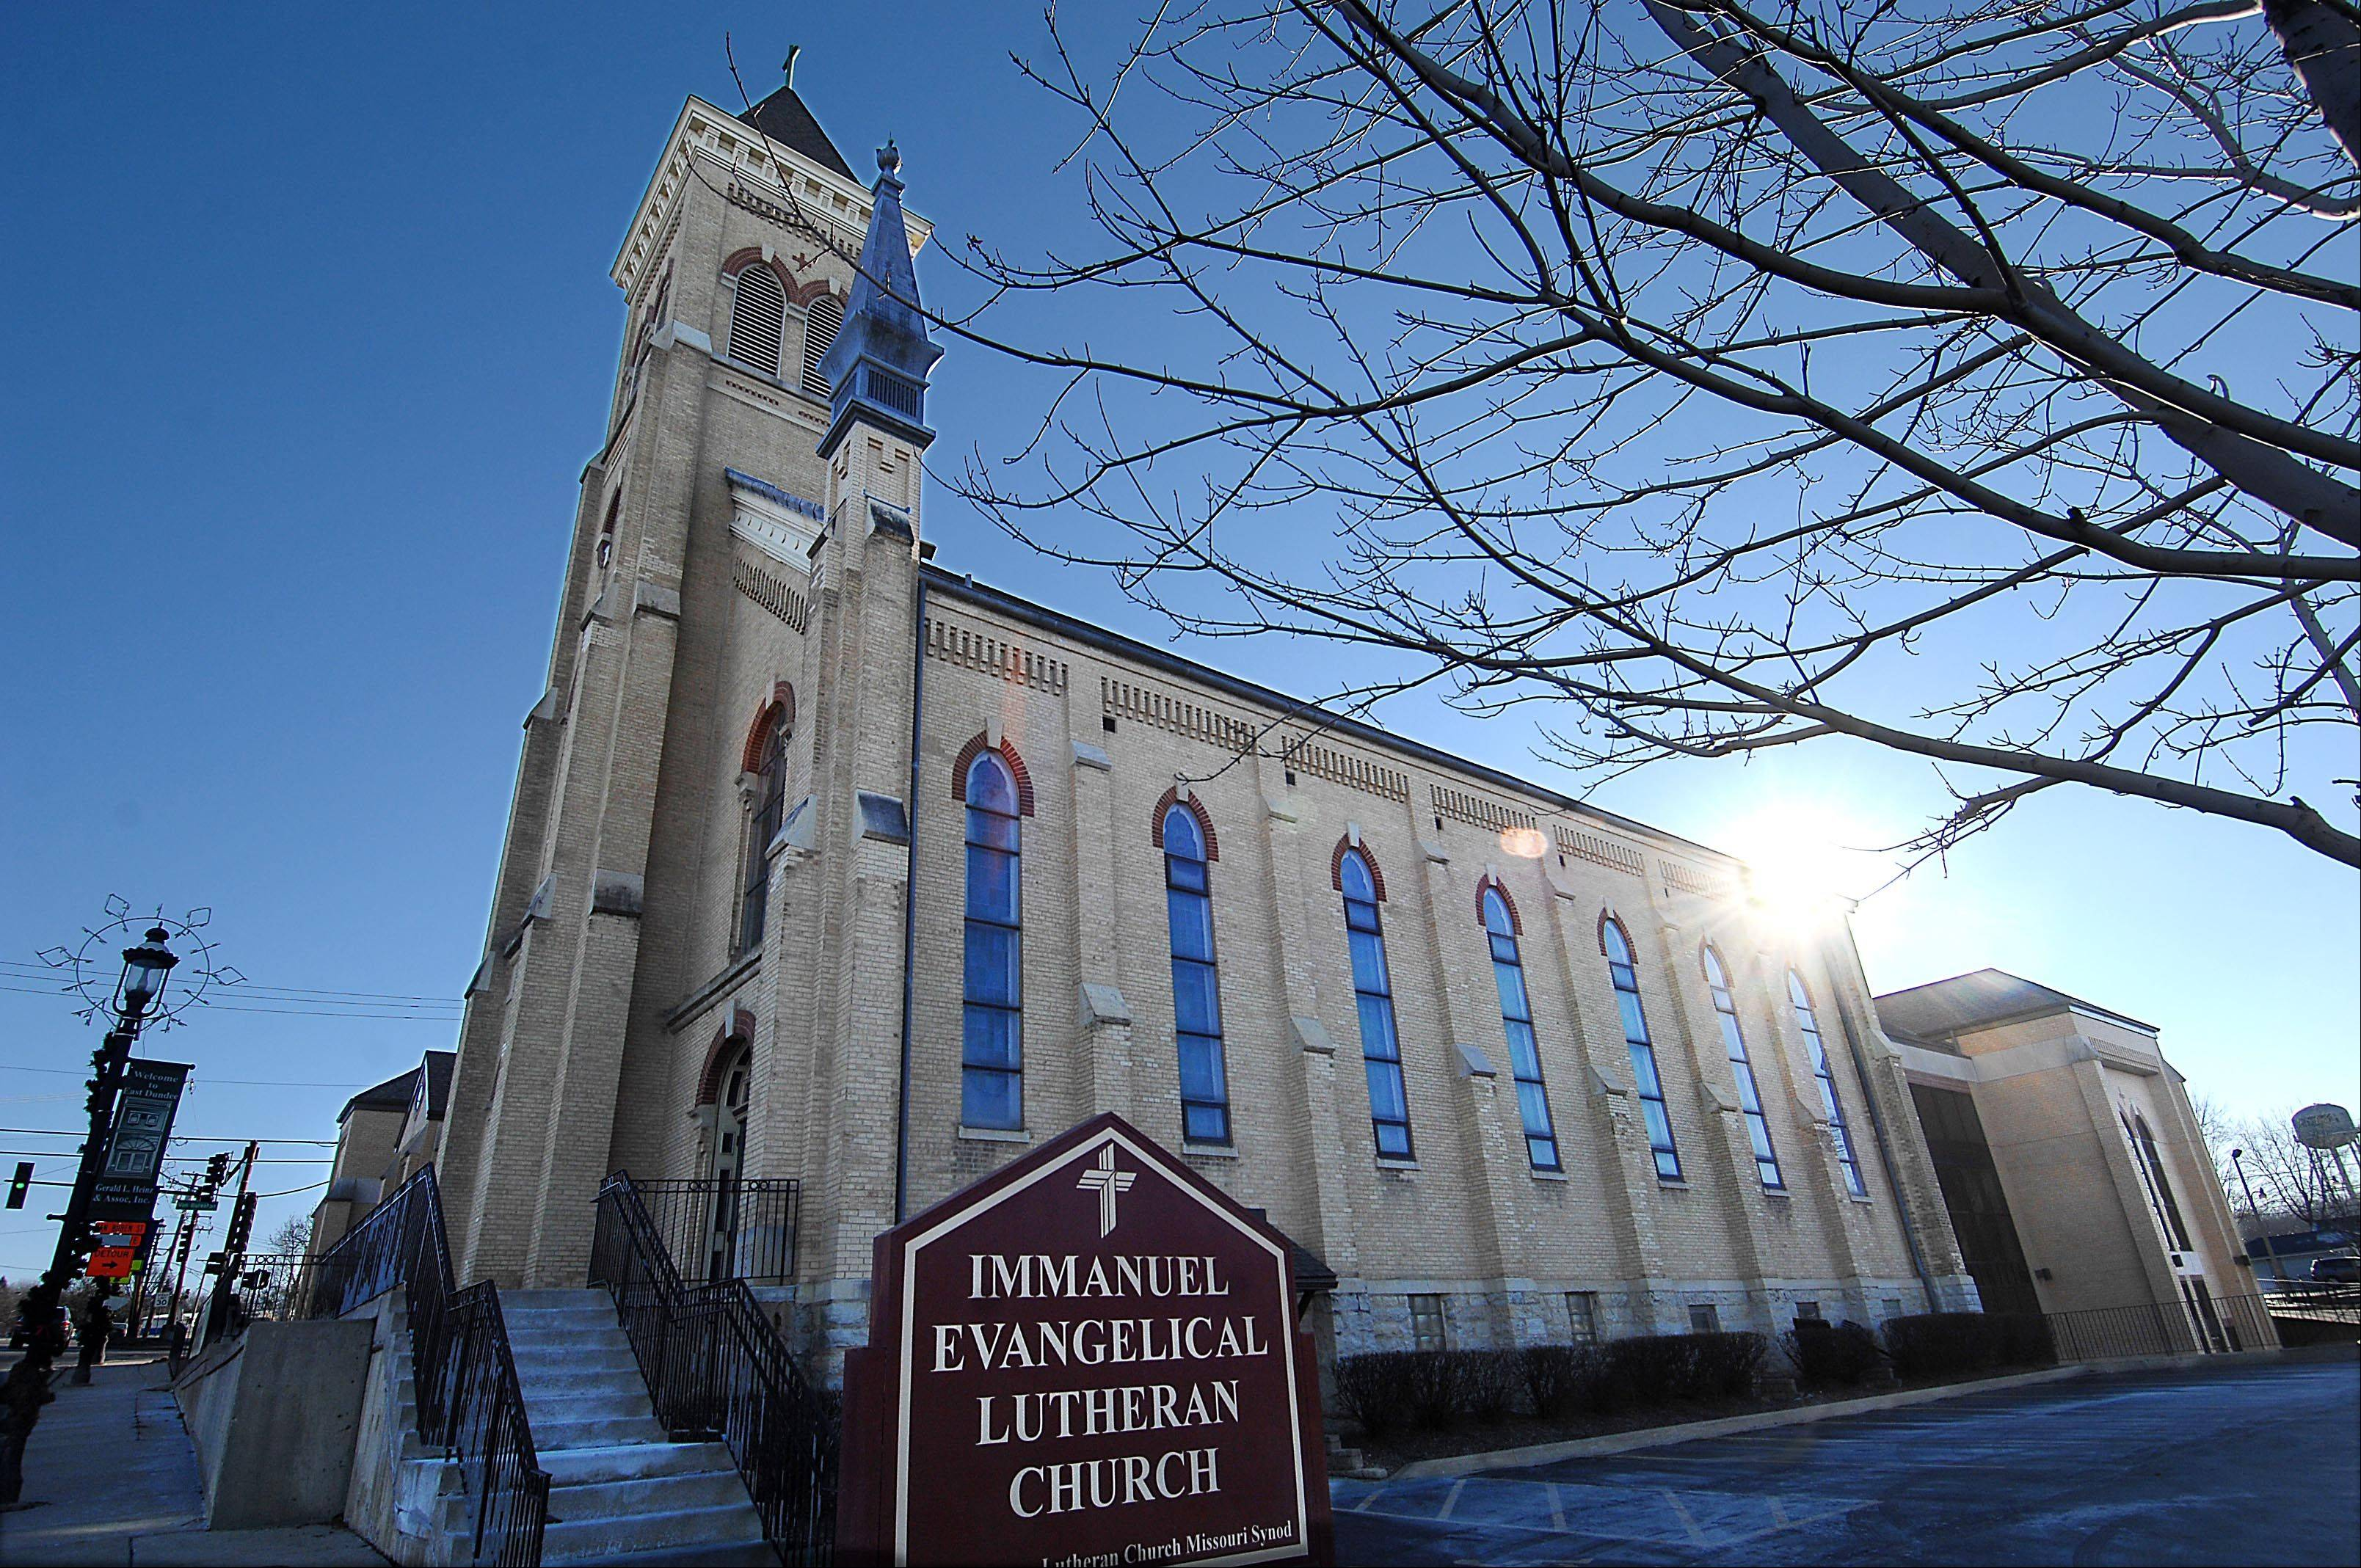 Immanuel Evangelical Lutheran Church stands at 310 E. Main St. in East Dundee. The congregation is celebrating its 150th anniversary.